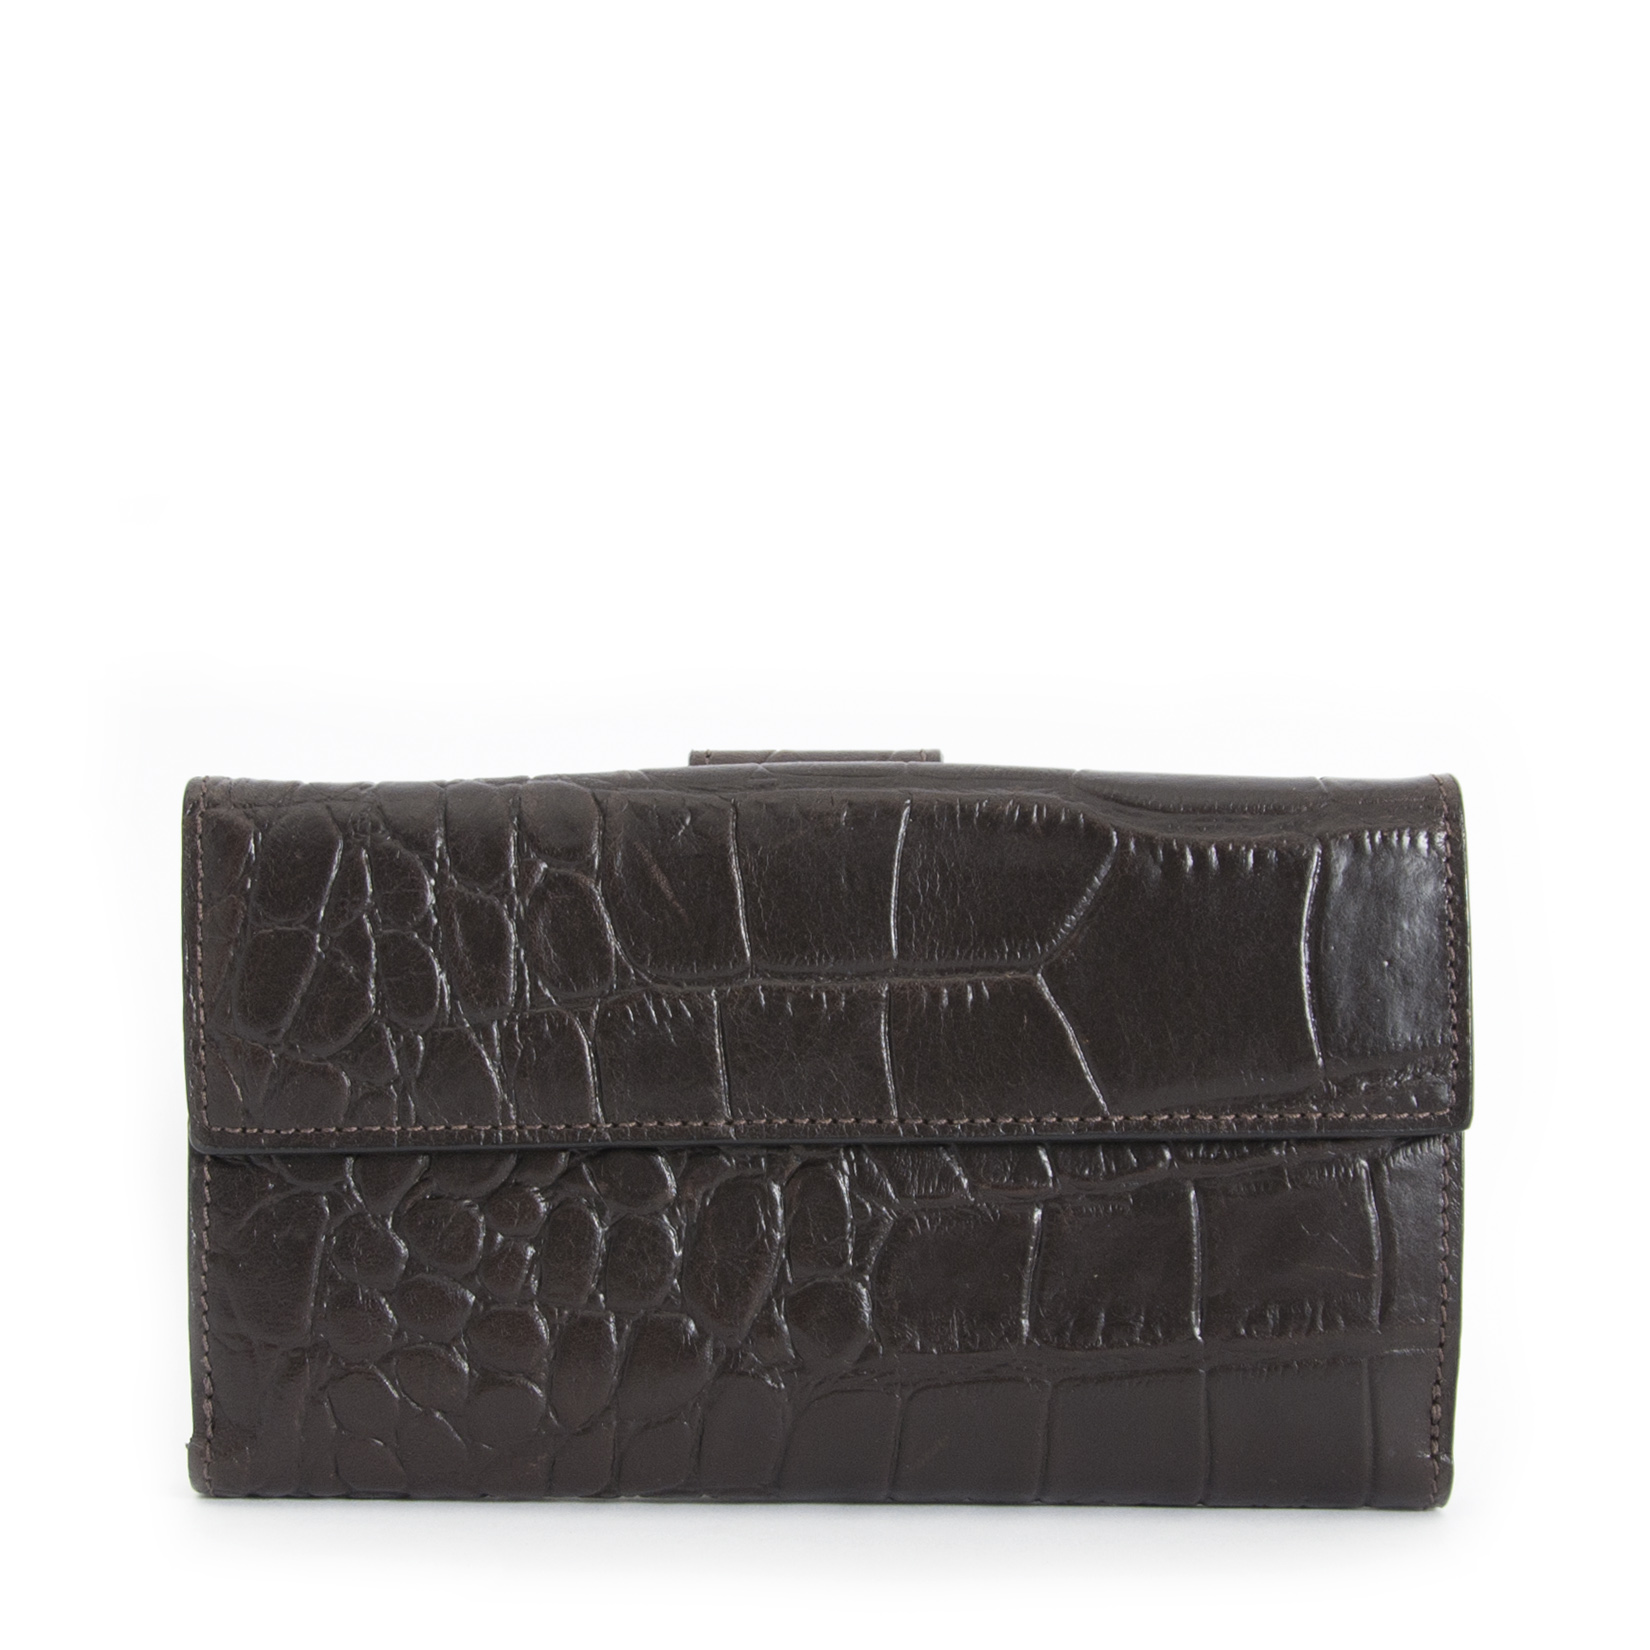 Mulberry Croco Embossed Brown Leather Wallet for the best price available online